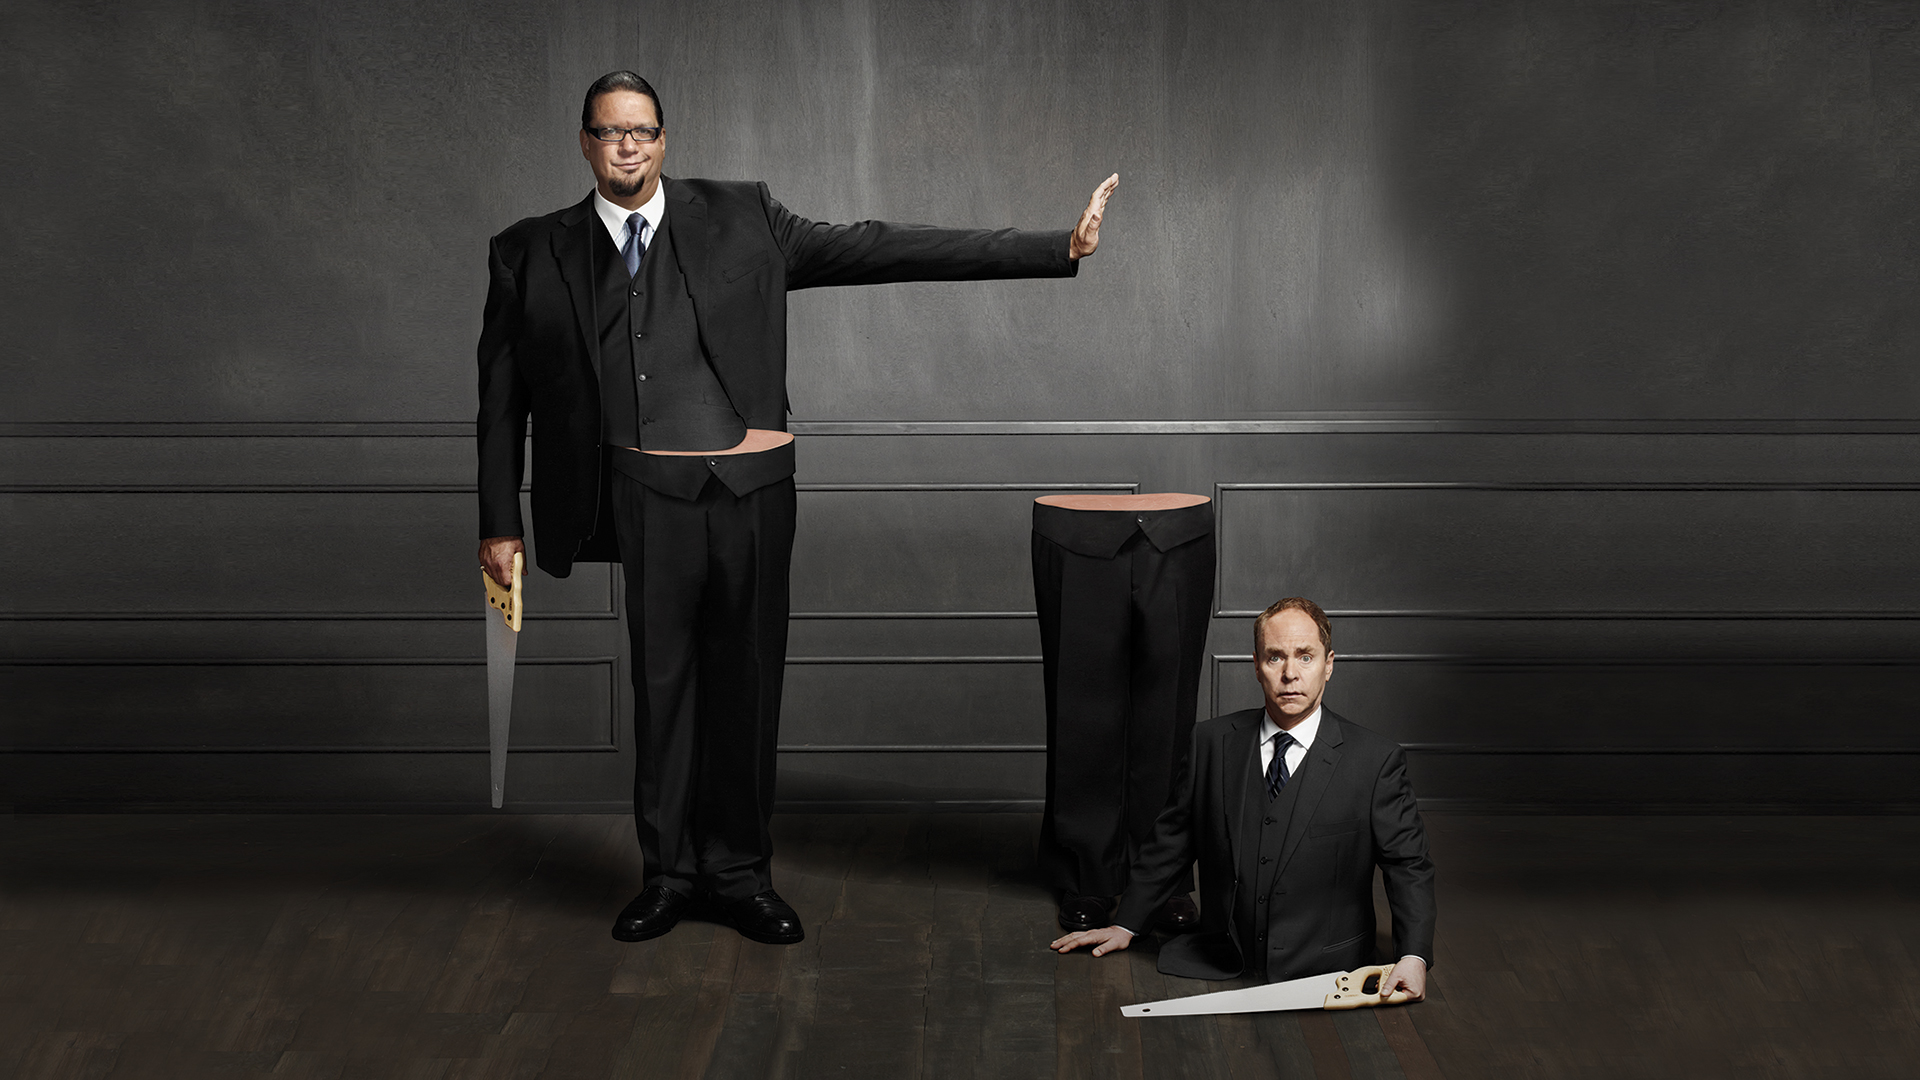 how tall is penn teller